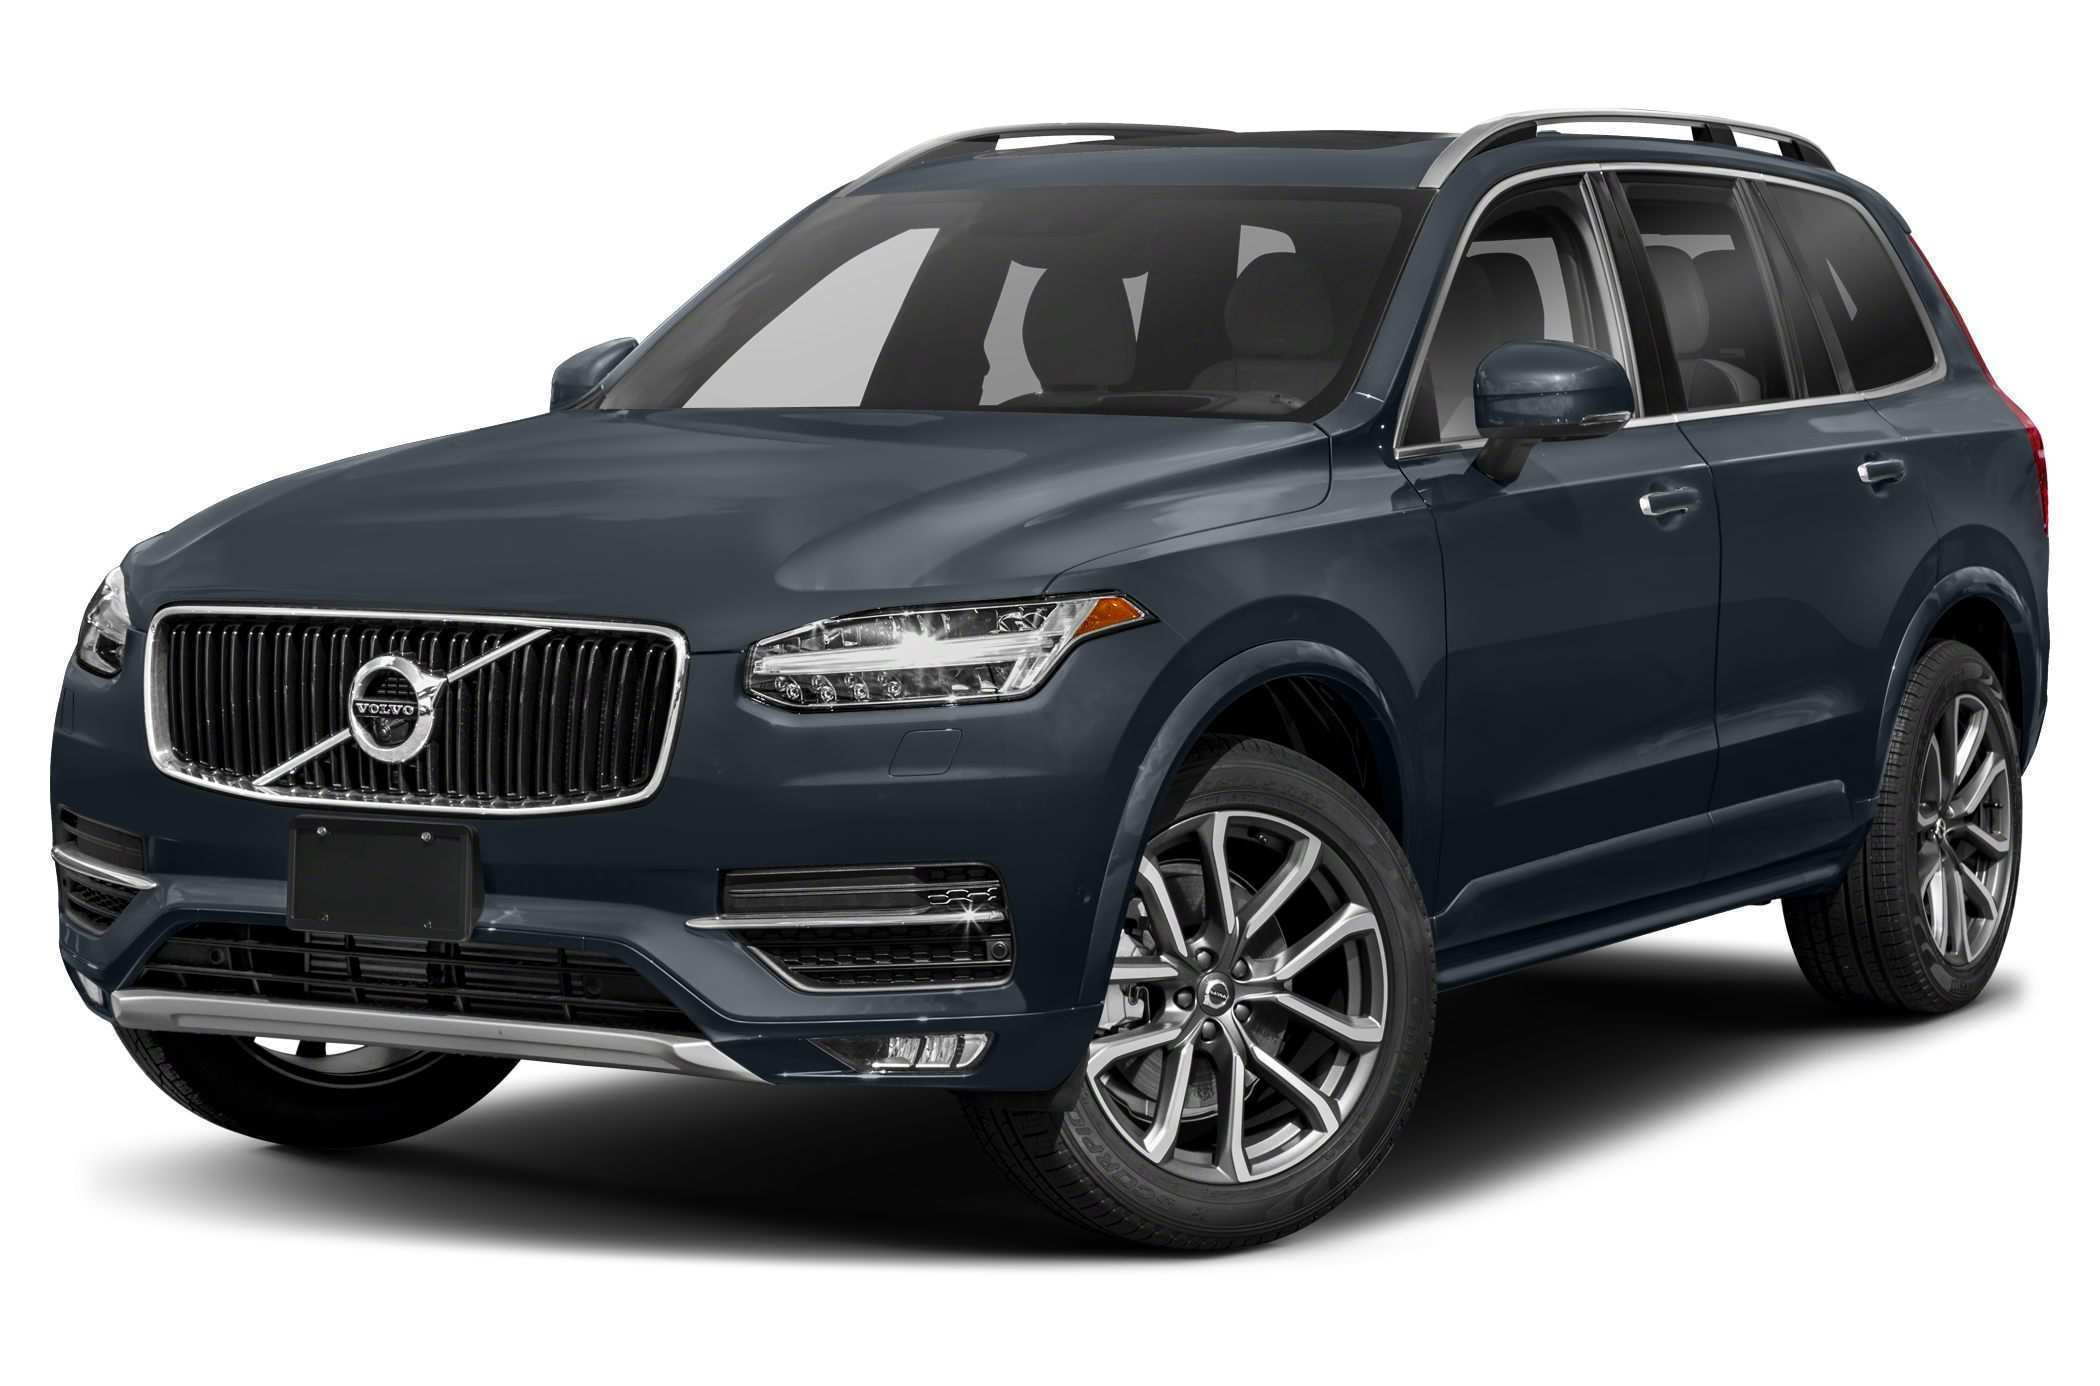 29 All New 2019 Volvo XC90 Spesification